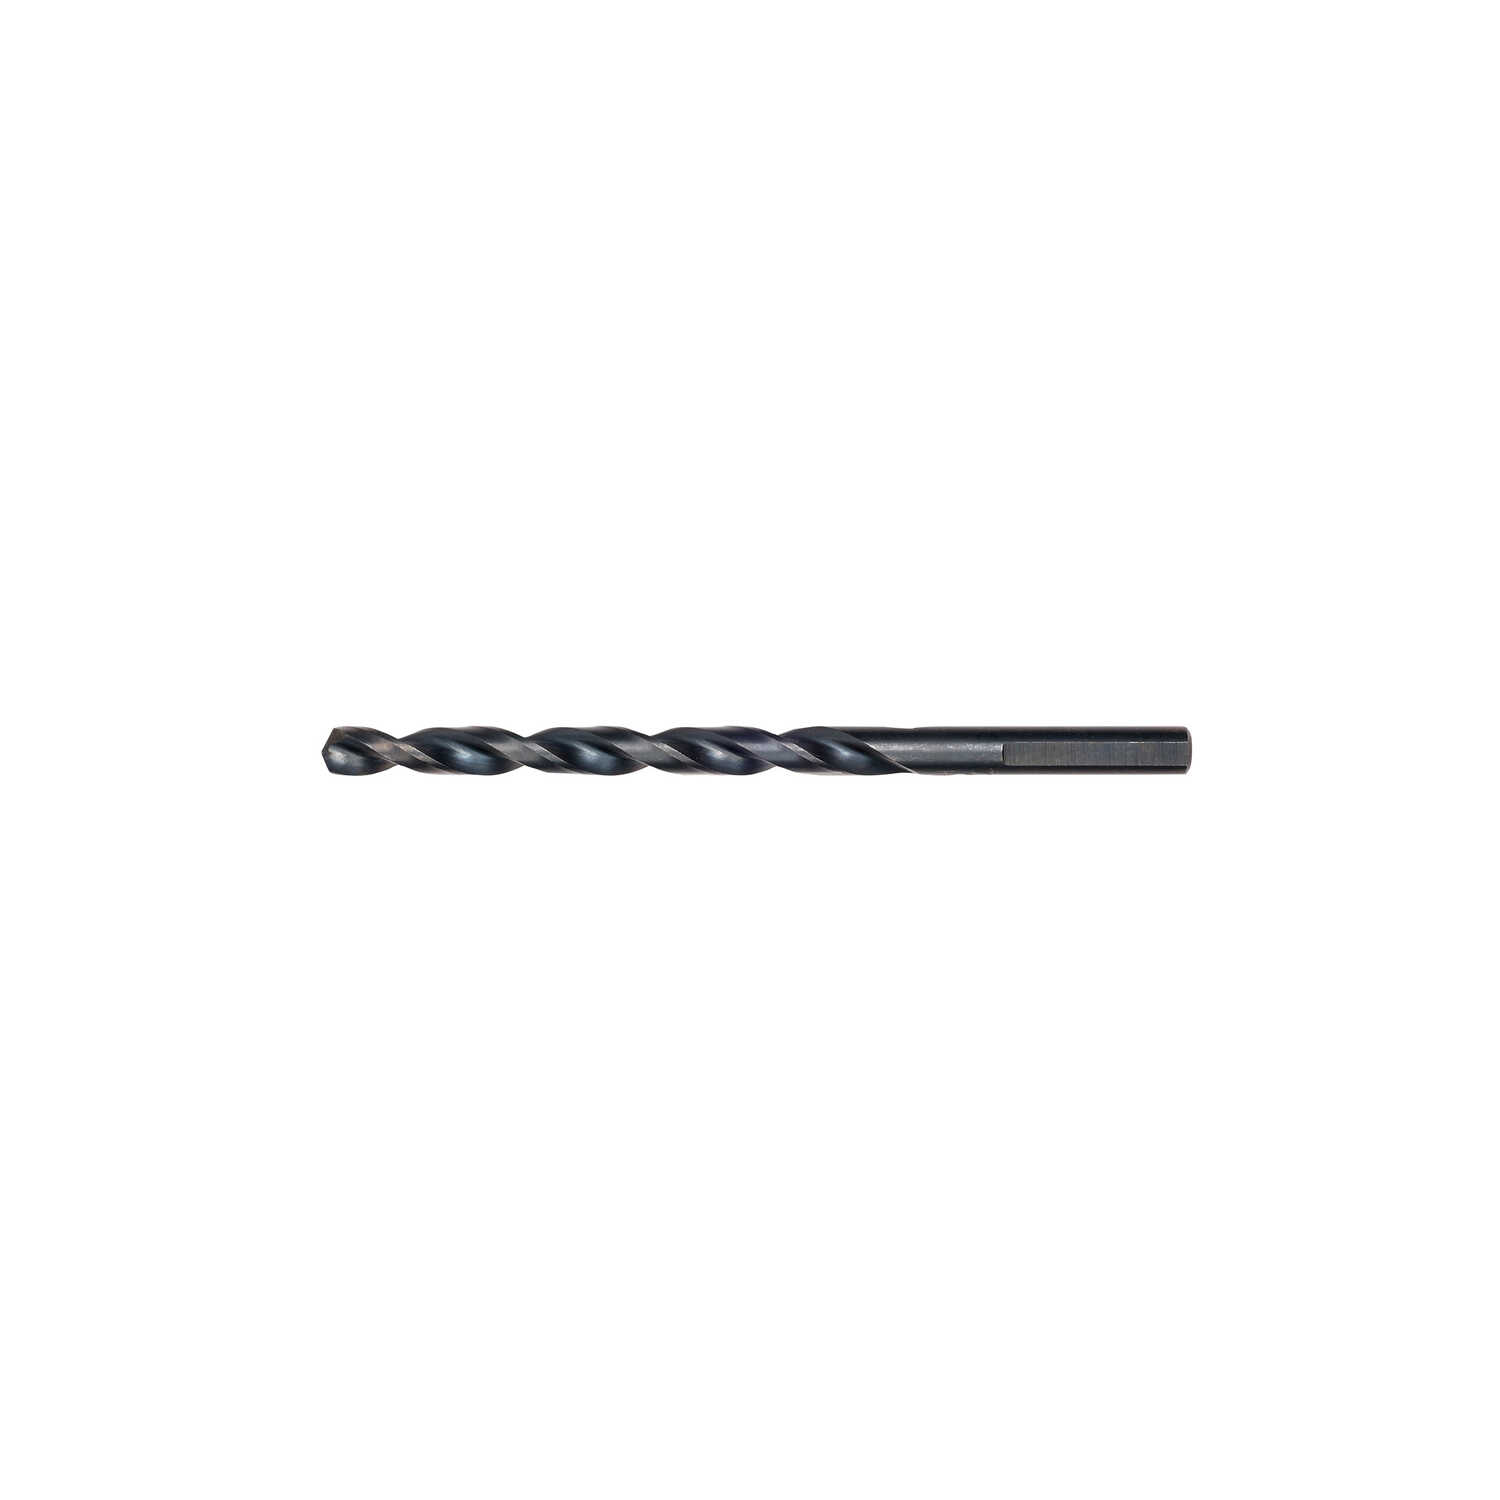 Milwaukee  THUNDERBOLT  7/32 in.  x 3-1/4 in. L Black Oxide  Drill Bit  1 pc.